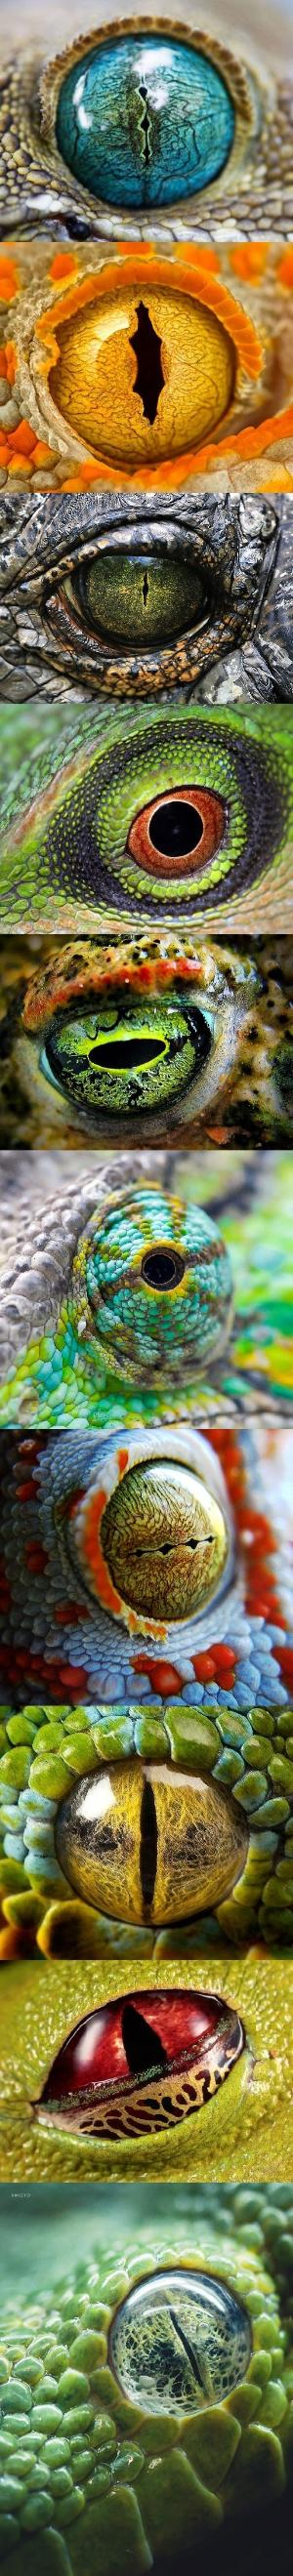 colorful animals   amazing collection   eyes